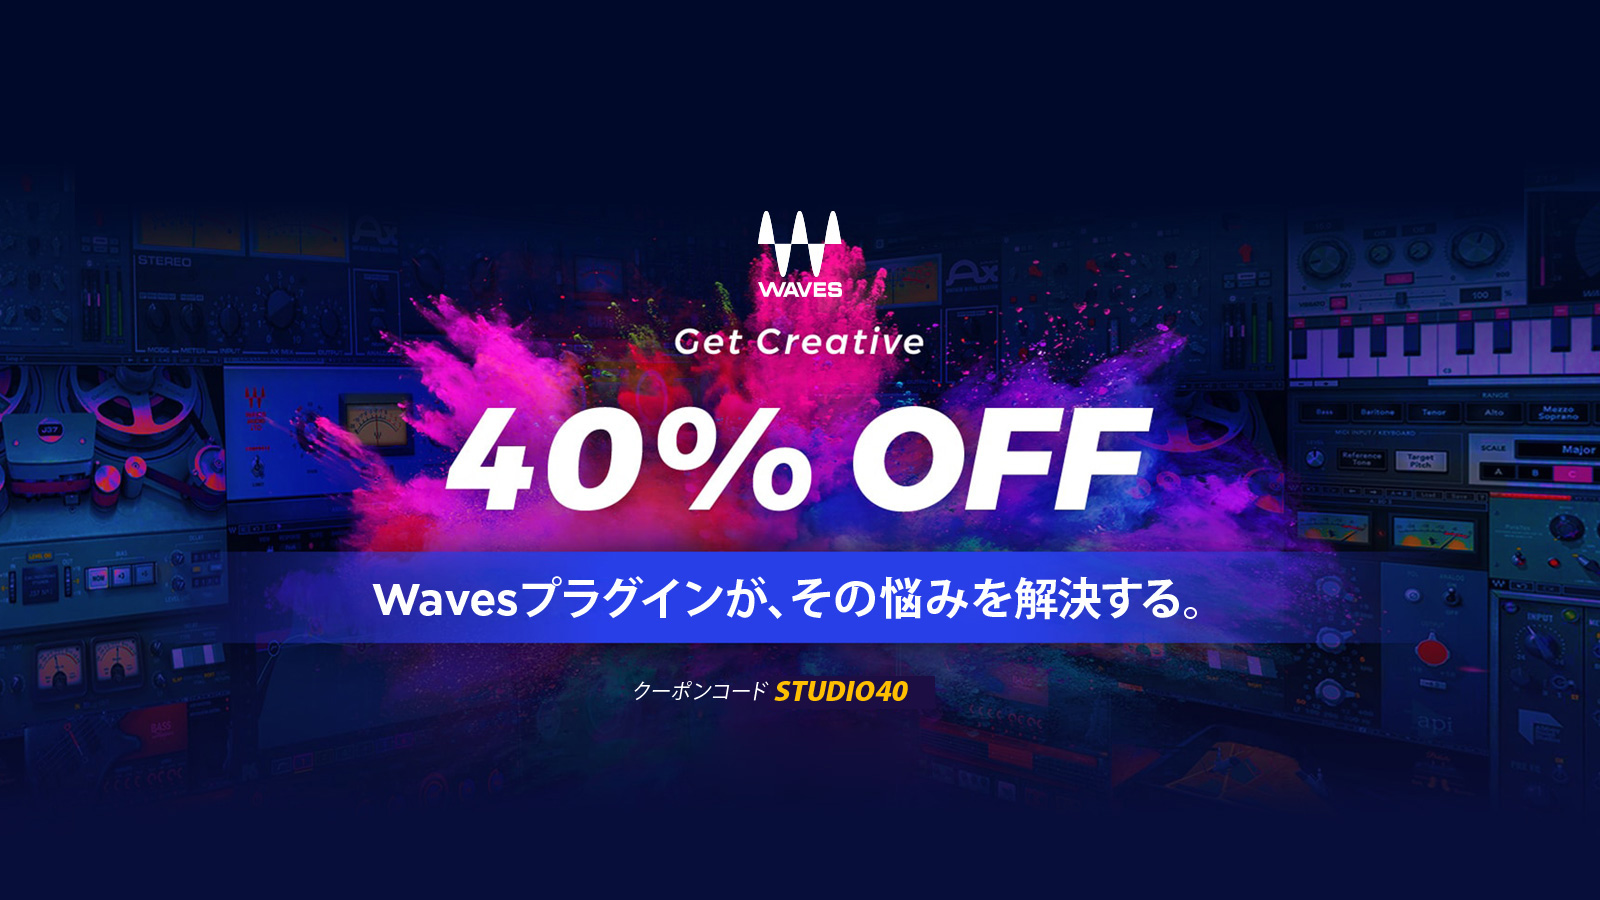 【40%OFF】Wavesほぼ全製品がクーポンで割引!条件クリアで無料プレゼントも!(クーポンコード変更)